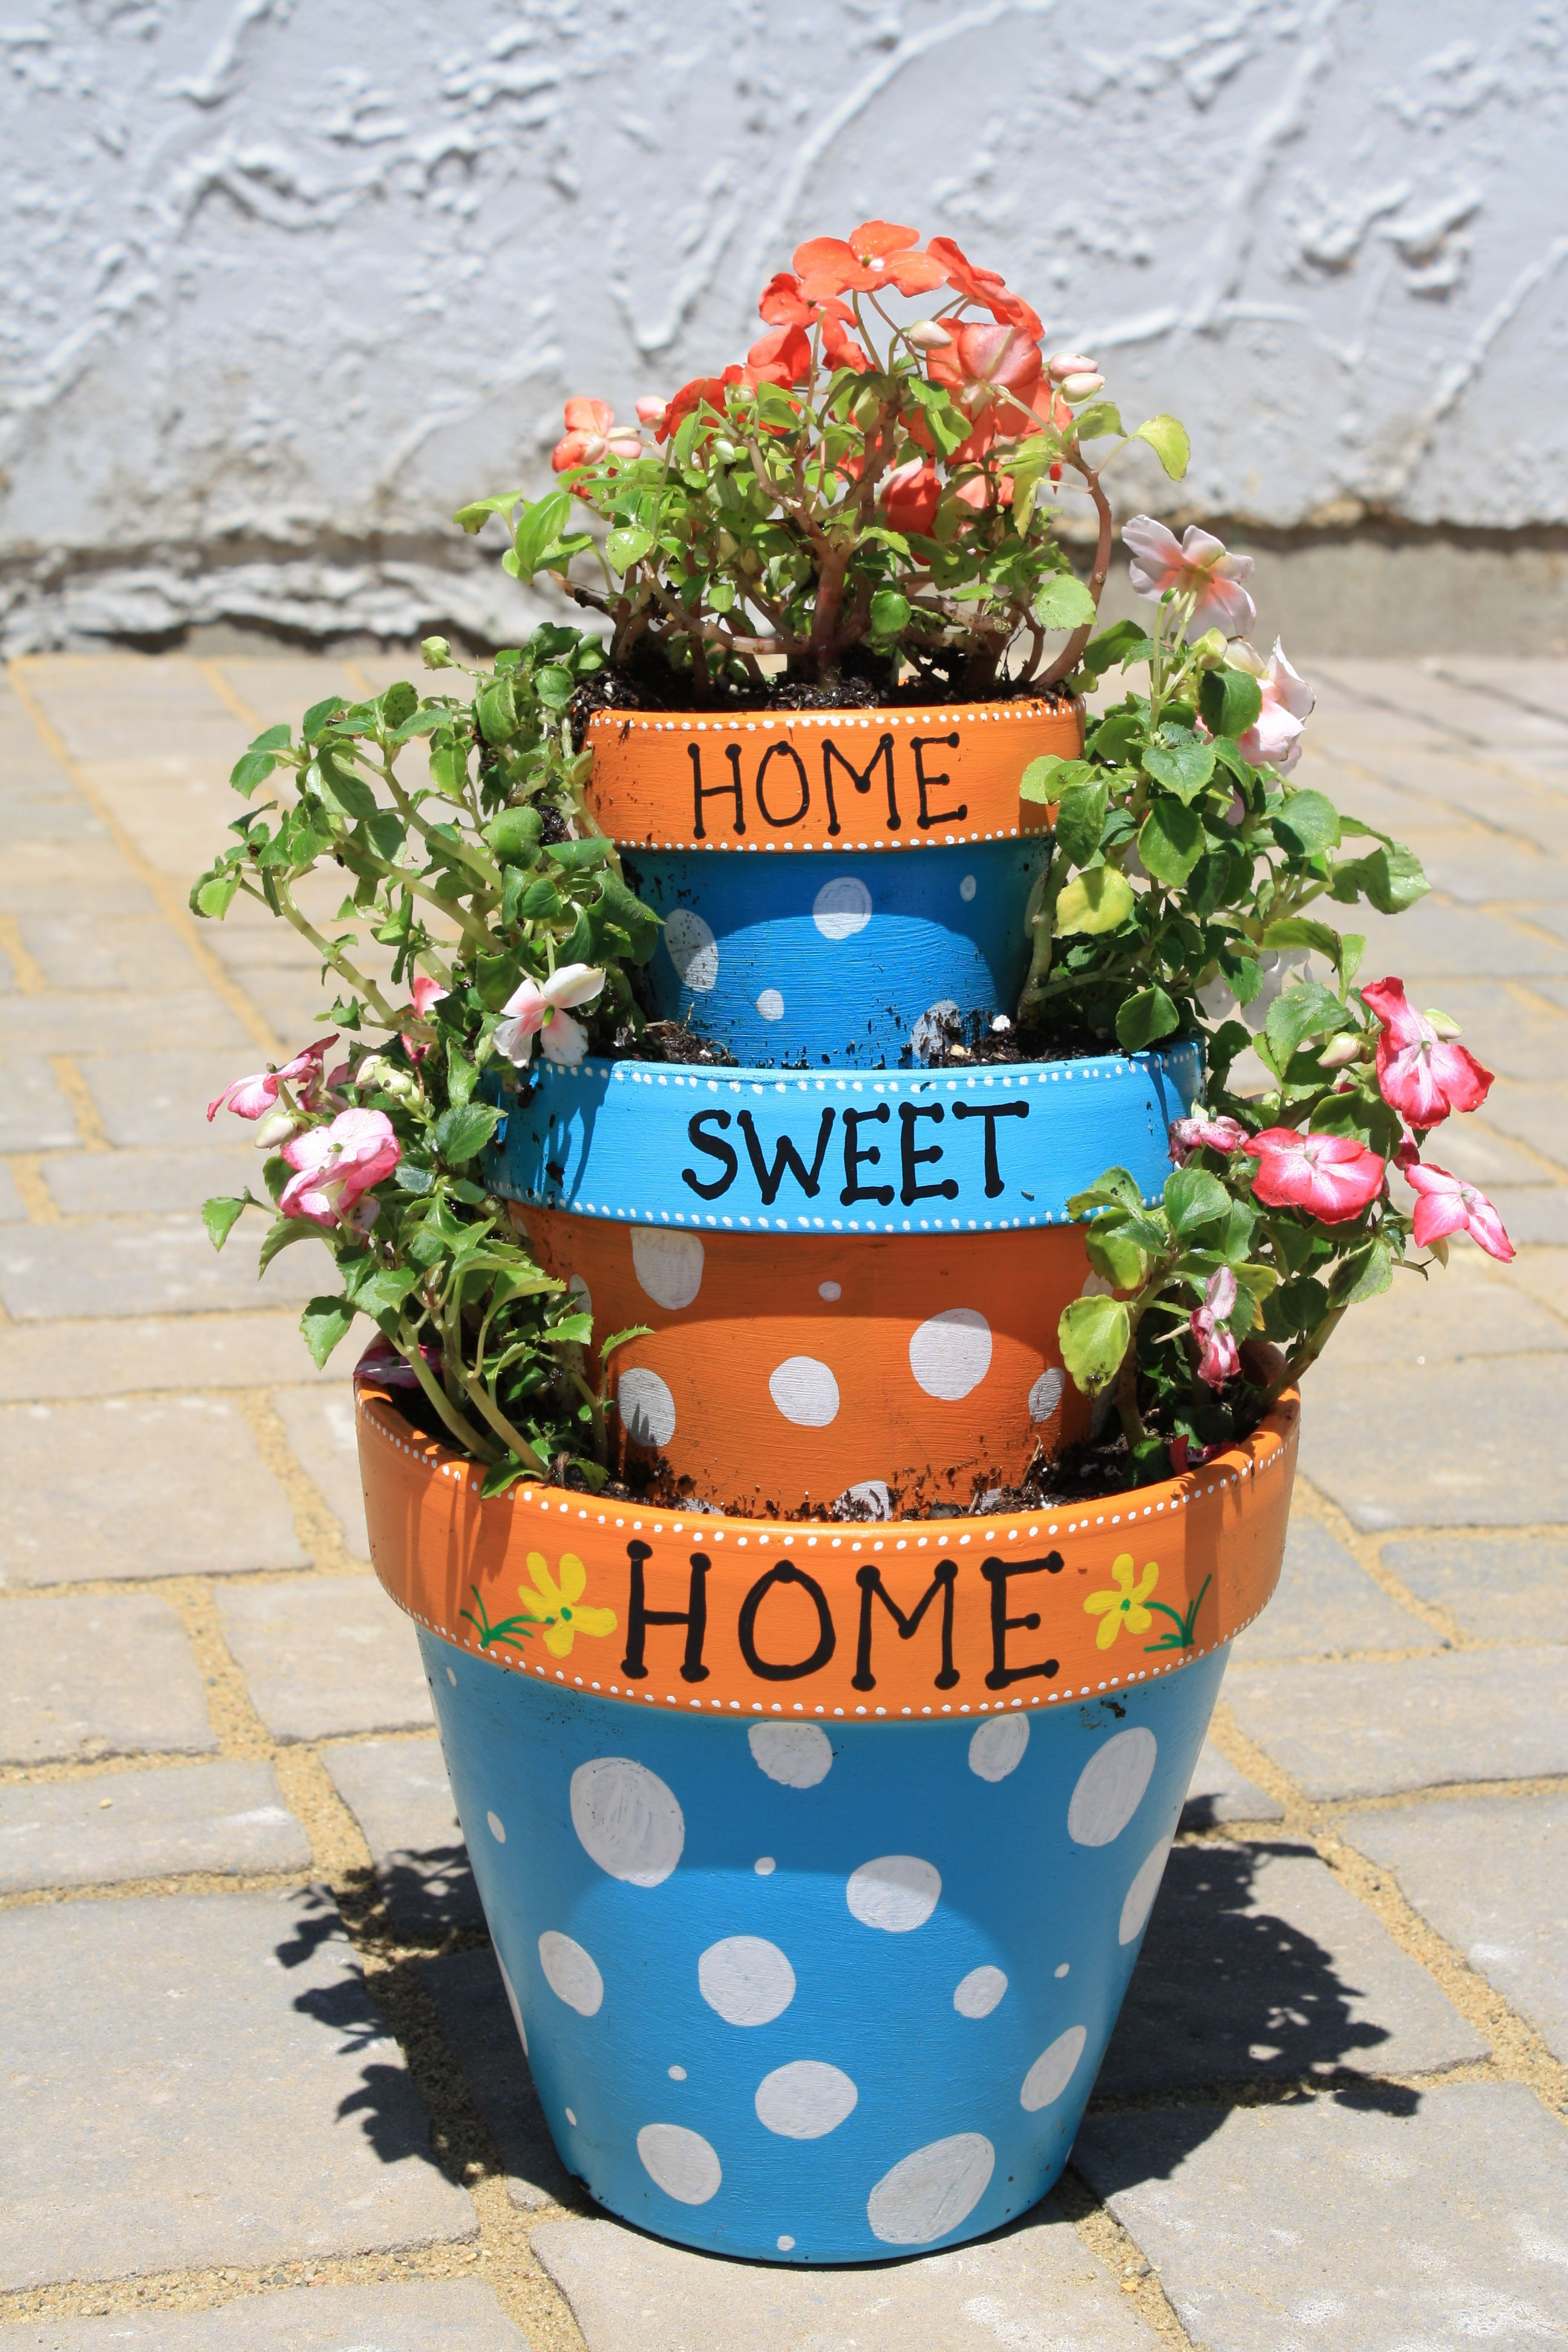 Tiered terracotta pots   use smallest size and layer wonky for mad     Tiered terracotta pots   use smallest size and layer wonky for mad hatter  decor